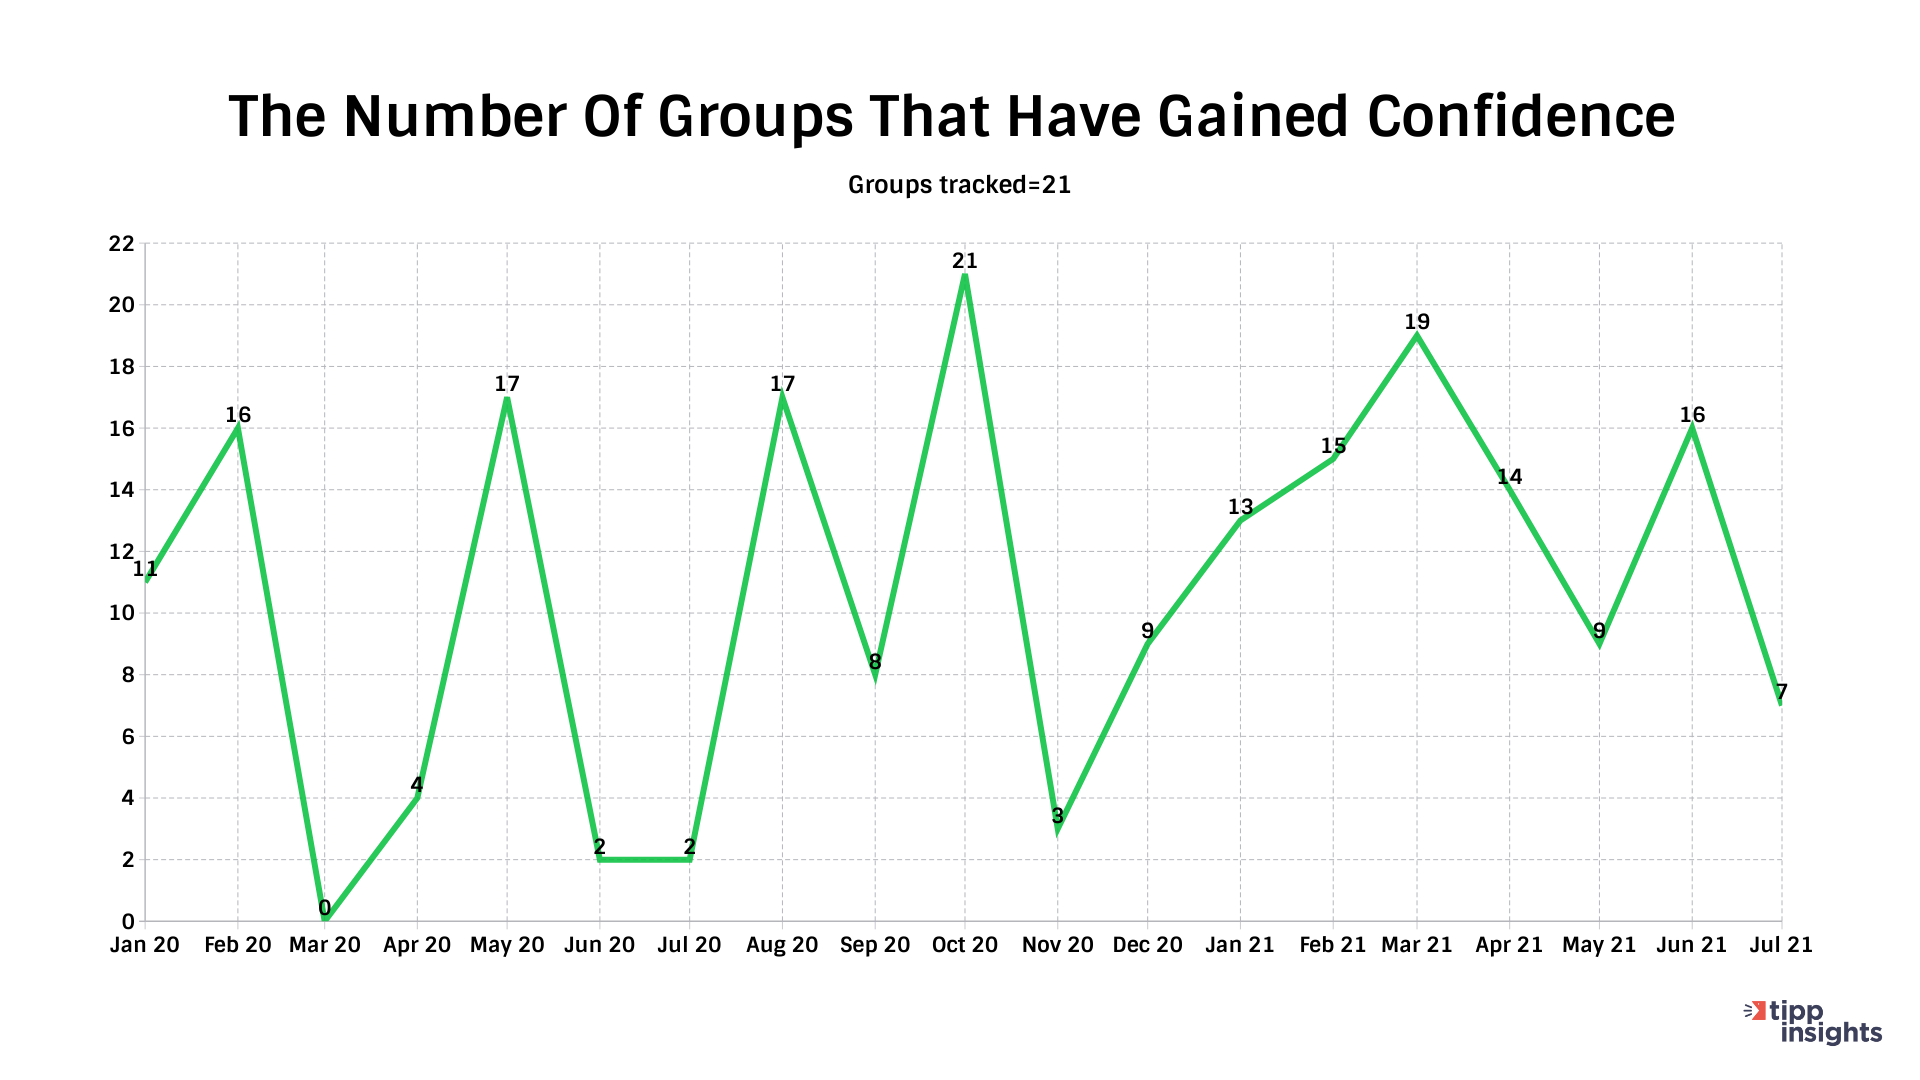 IBD/TIPP Economic Optimism Index Number Of Groups That Have Gained Confidence